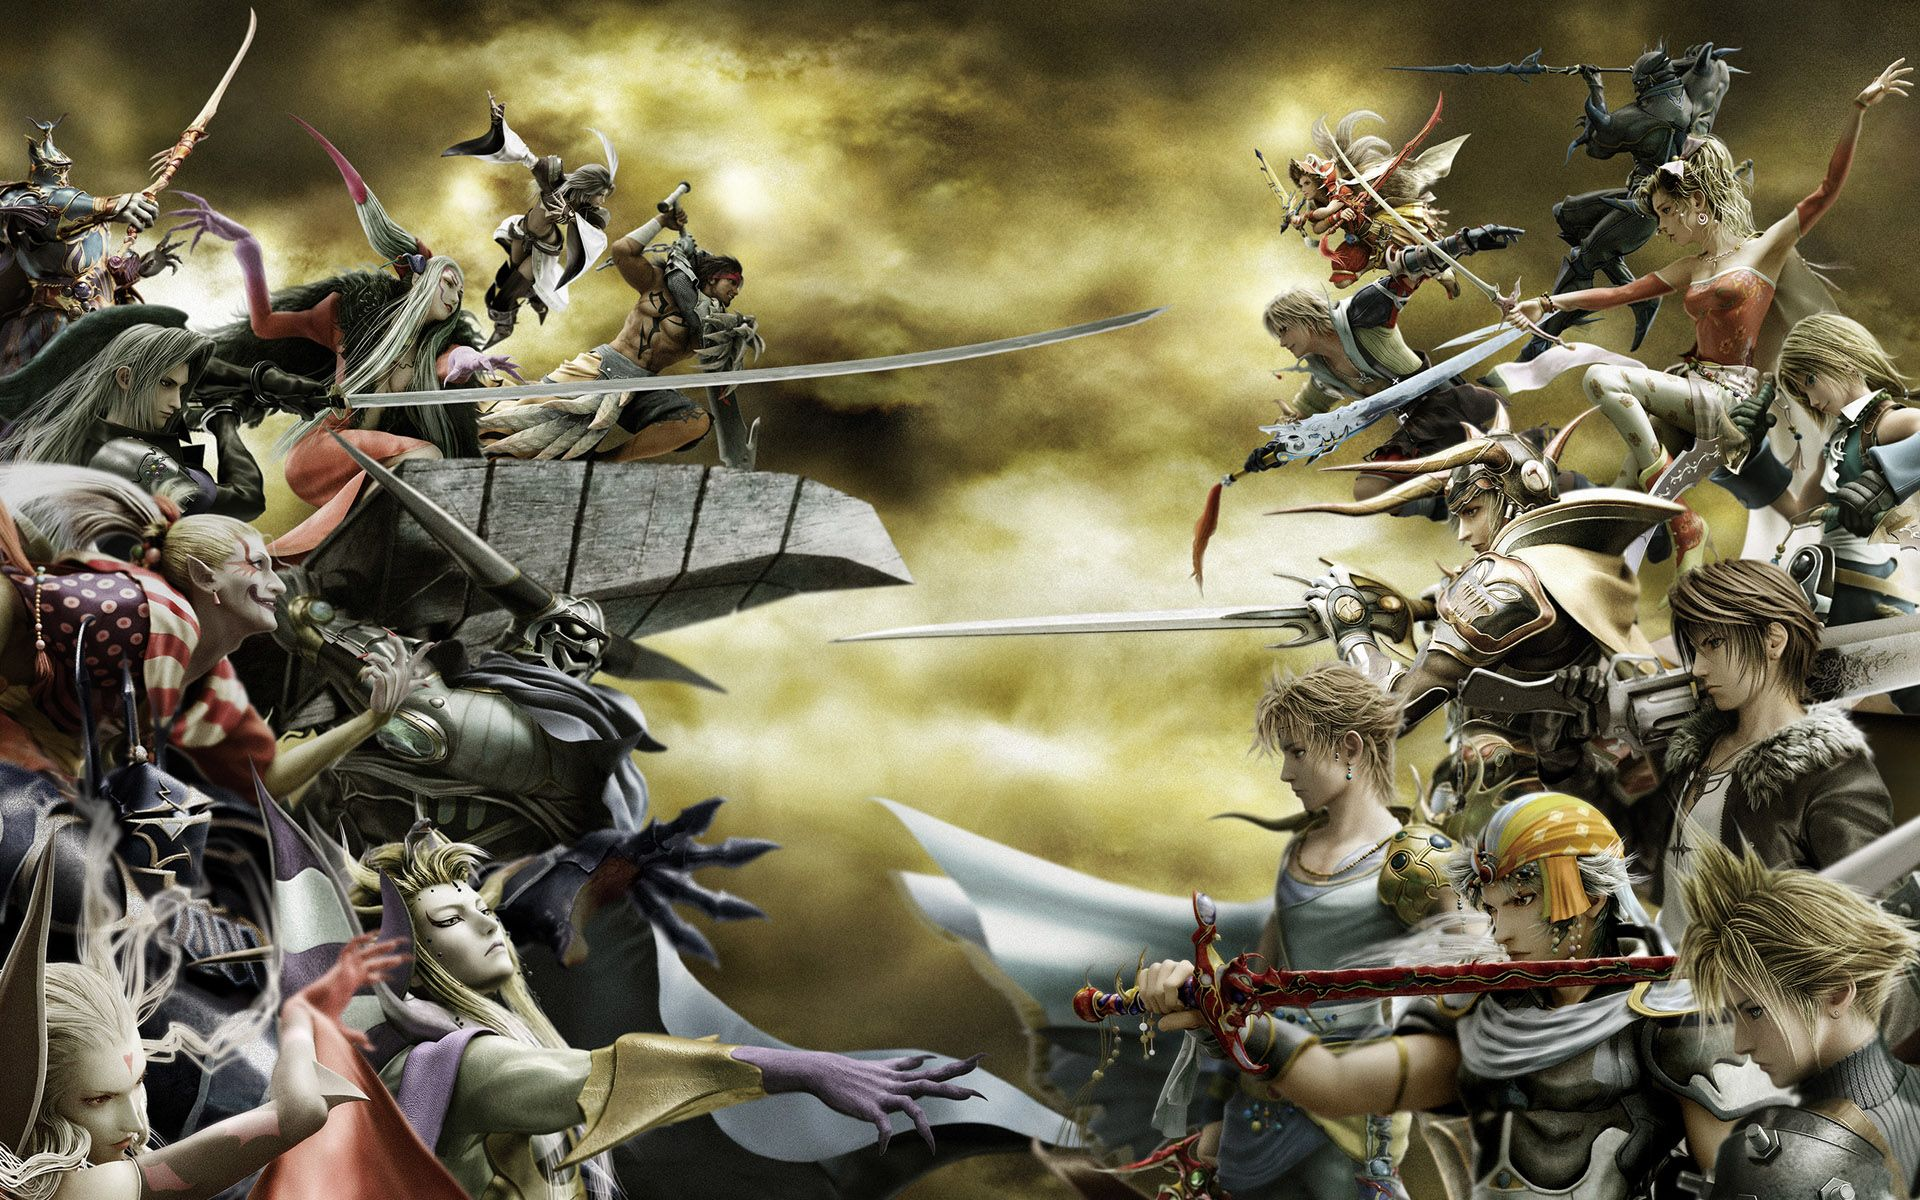 Final Fantasy Cloud Wallpaper Hd | HD Wallpapers | Pinterest | Final ...